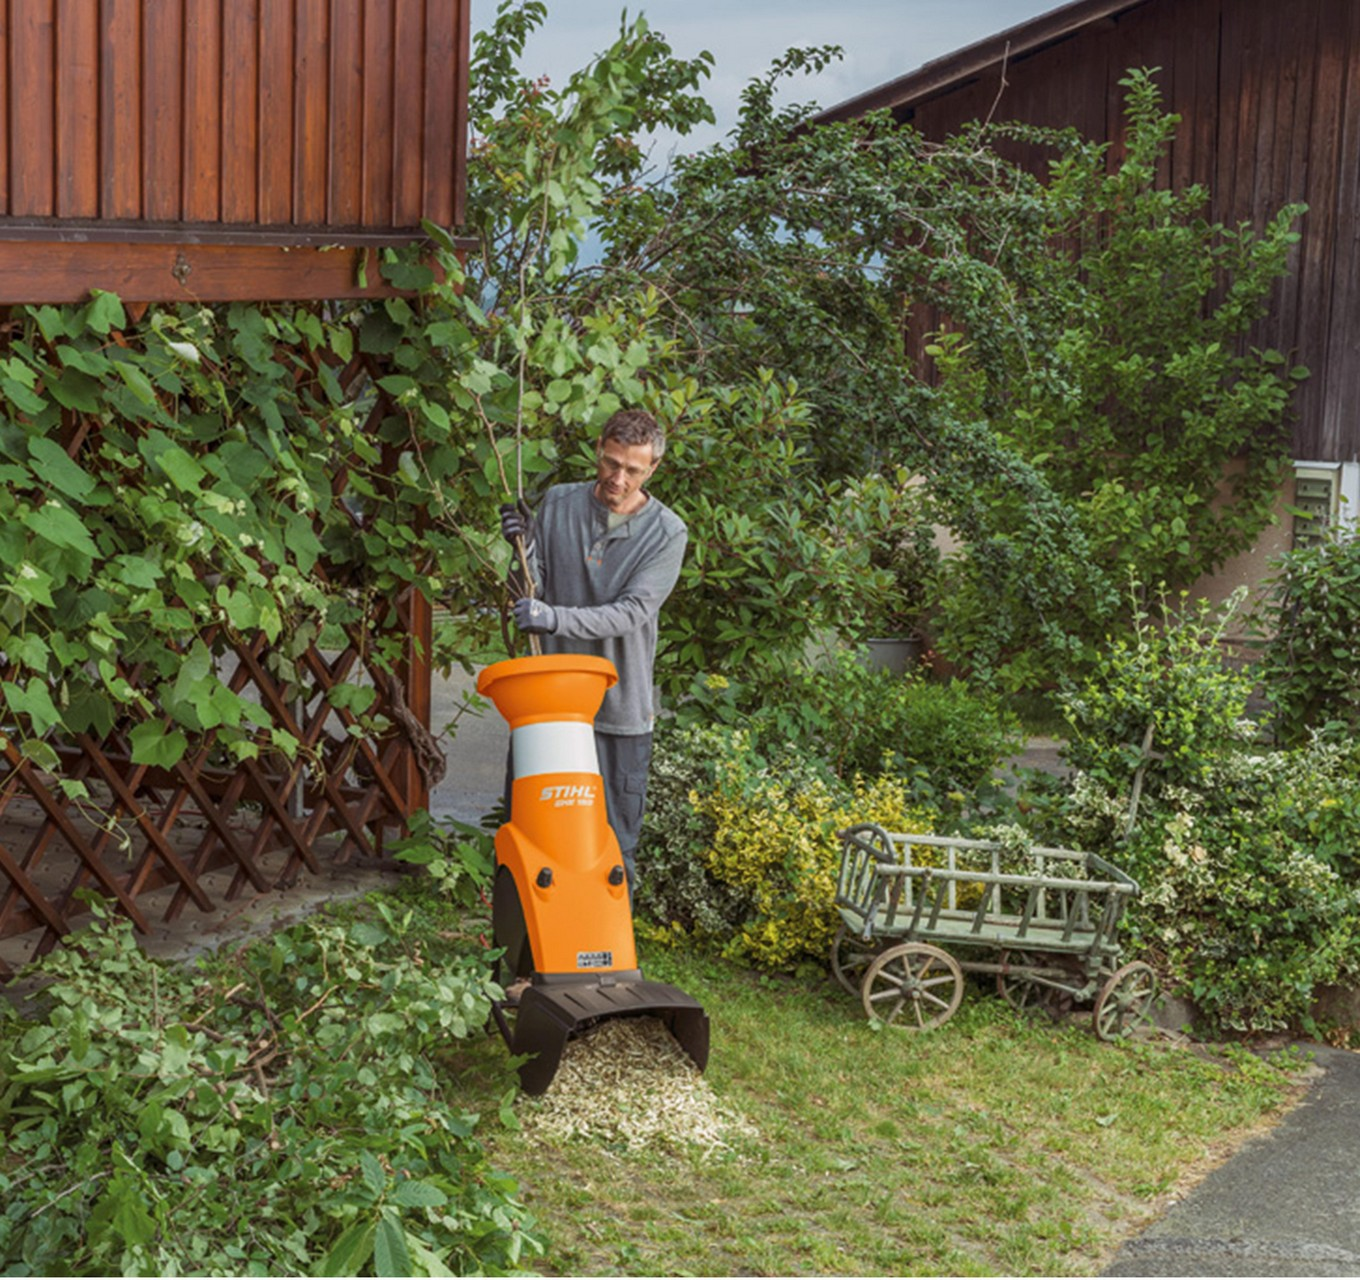 GHE 150 Garden Shredder